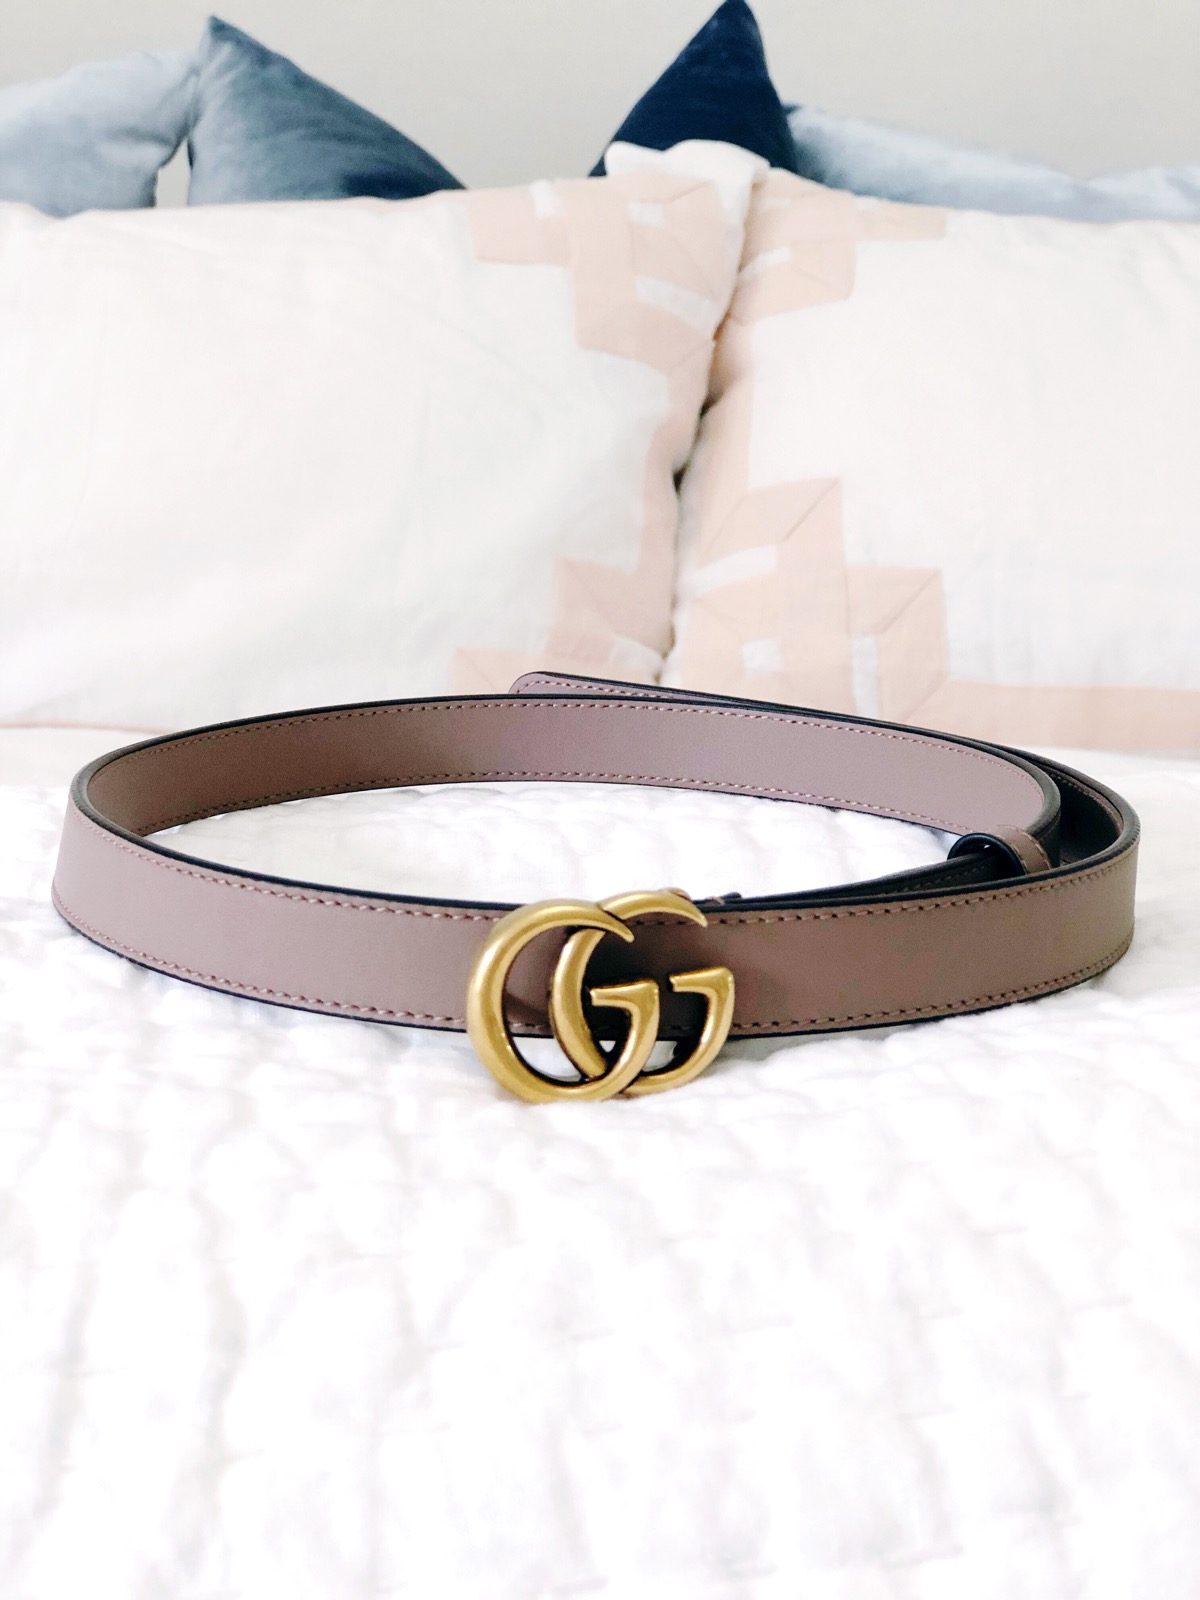 7cefacacc4d Gucci Belt Review + Buying Guide - Veronika's Blushing